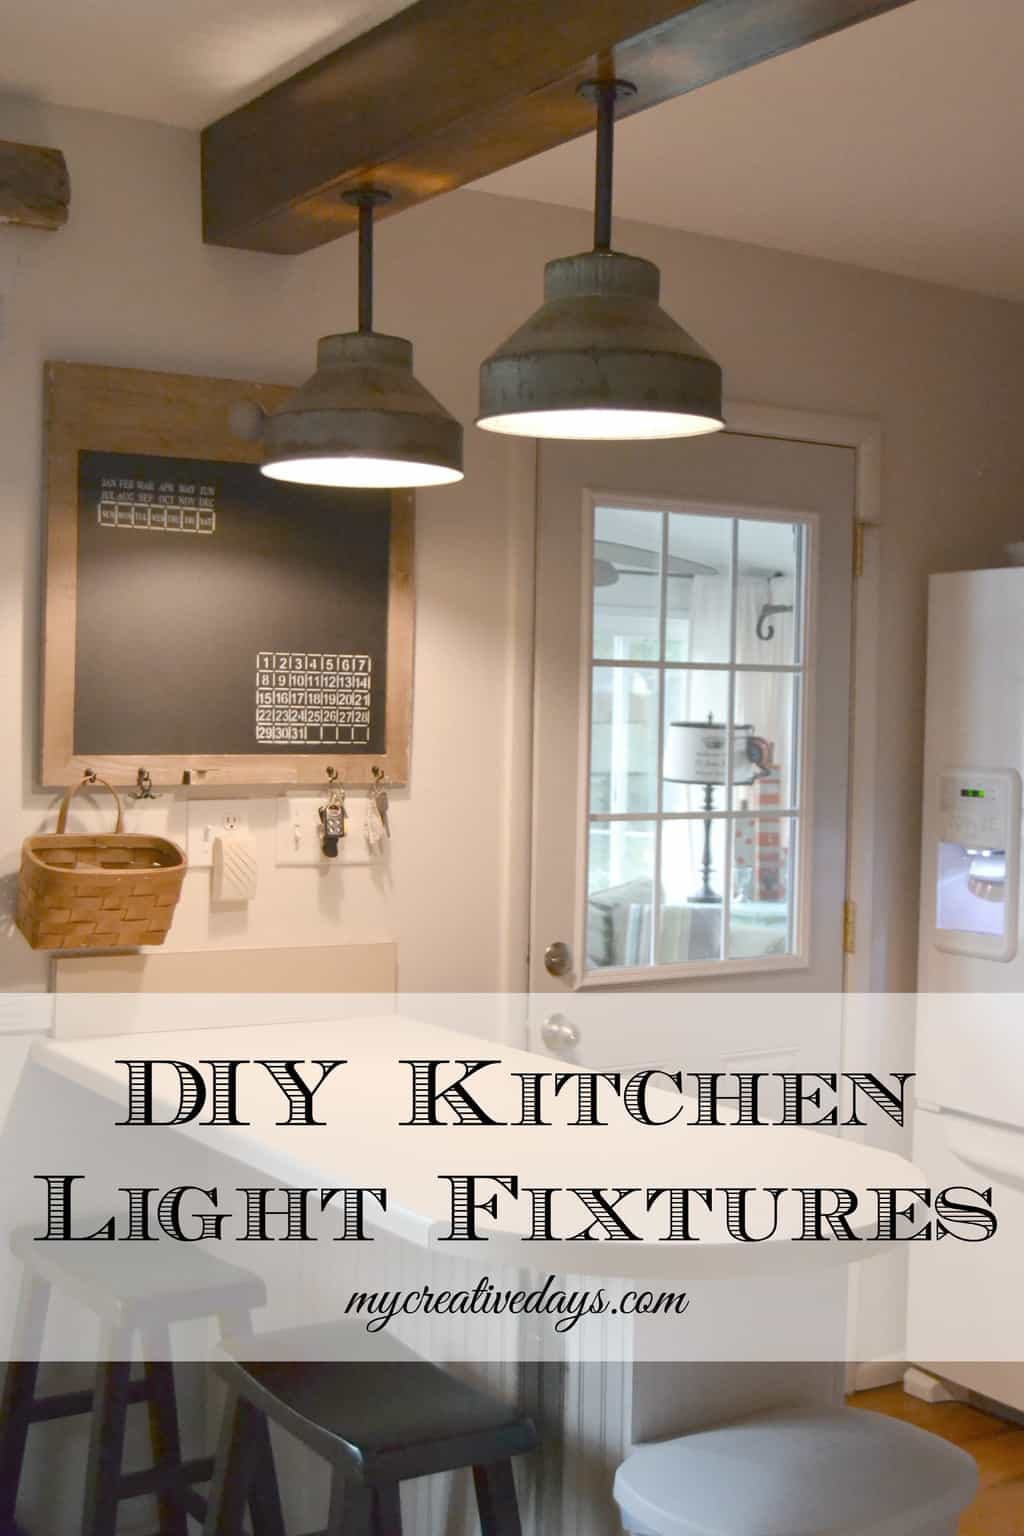 diy kitchen light fixtures part 2 industrial kitchen light fixtures Pin this DIY Kitchen Light Fixtures Part 2 mycreativedays com